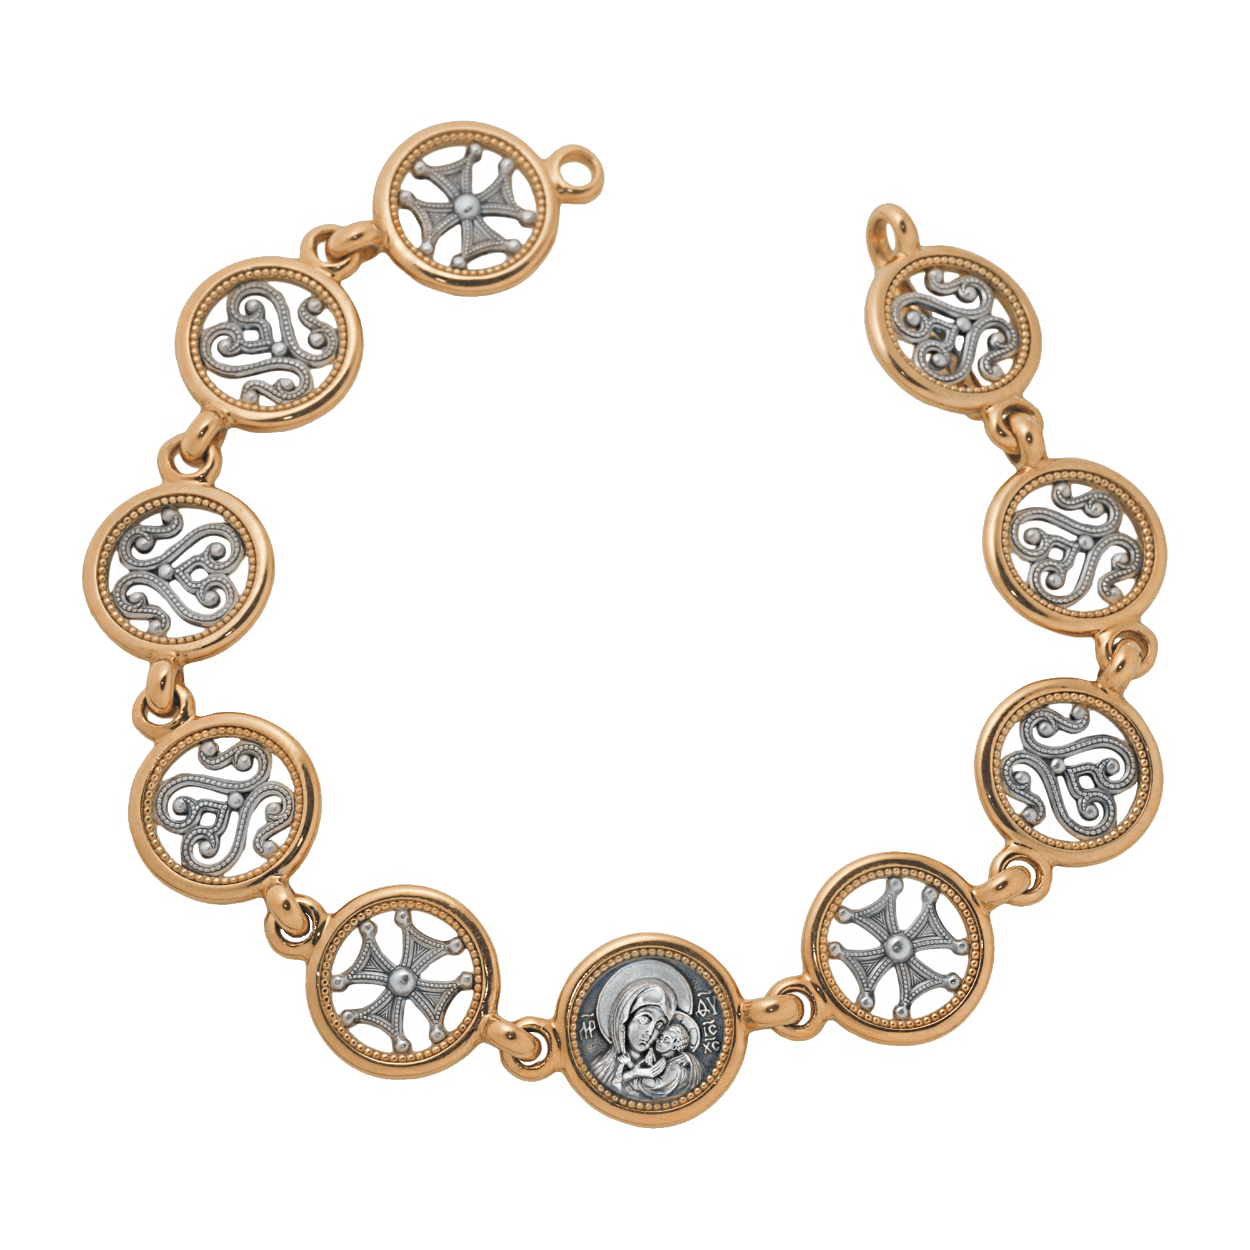 russian-orthodox-silver-gilded-bracelet-for-woman-master-jeweler-fedorov